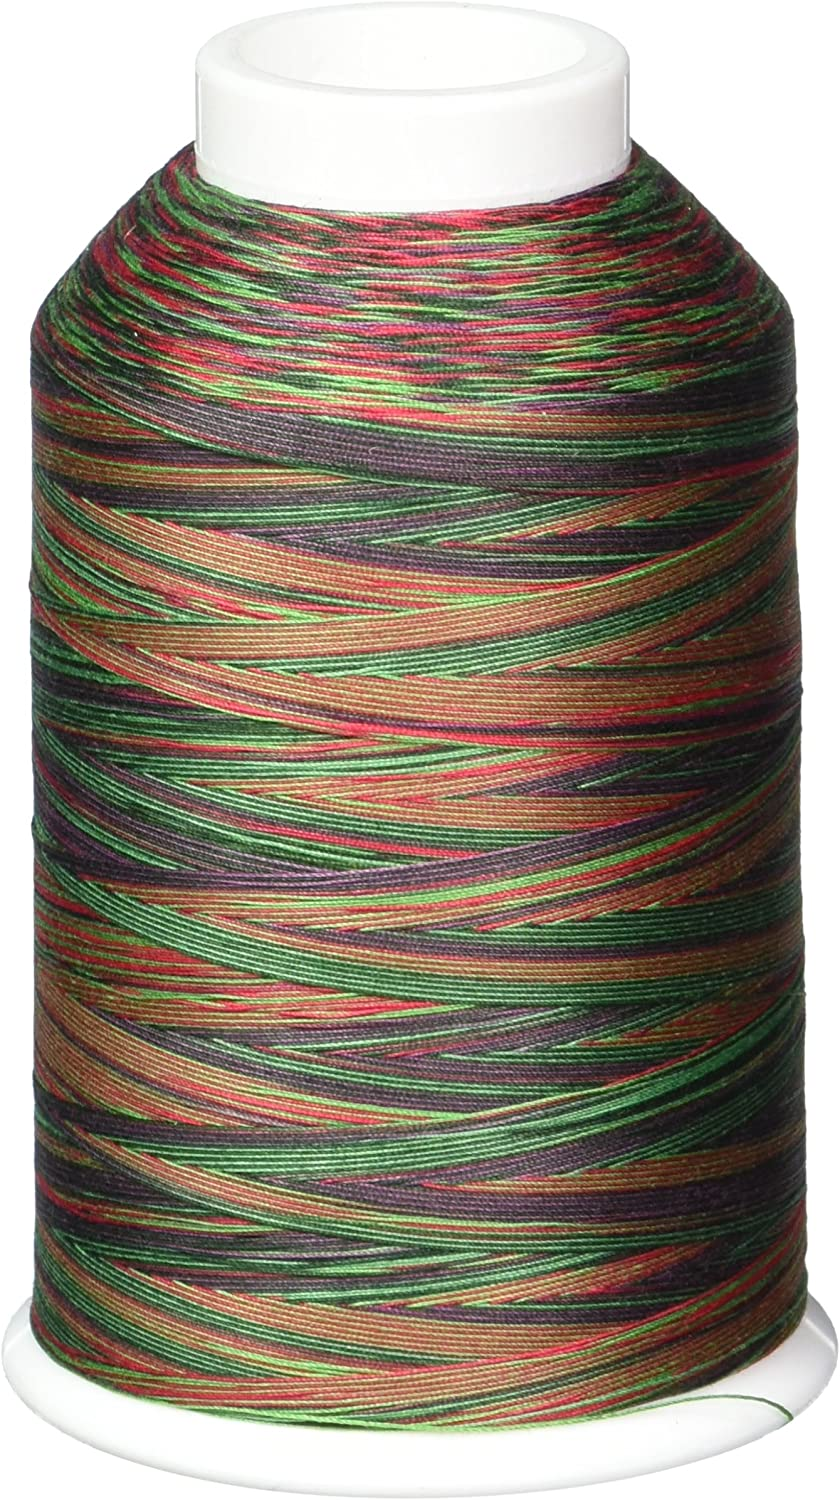 YLI 2443014V 3-Ply Machine Cotton Quilting Variegated Thread, 3000 yd, Festival